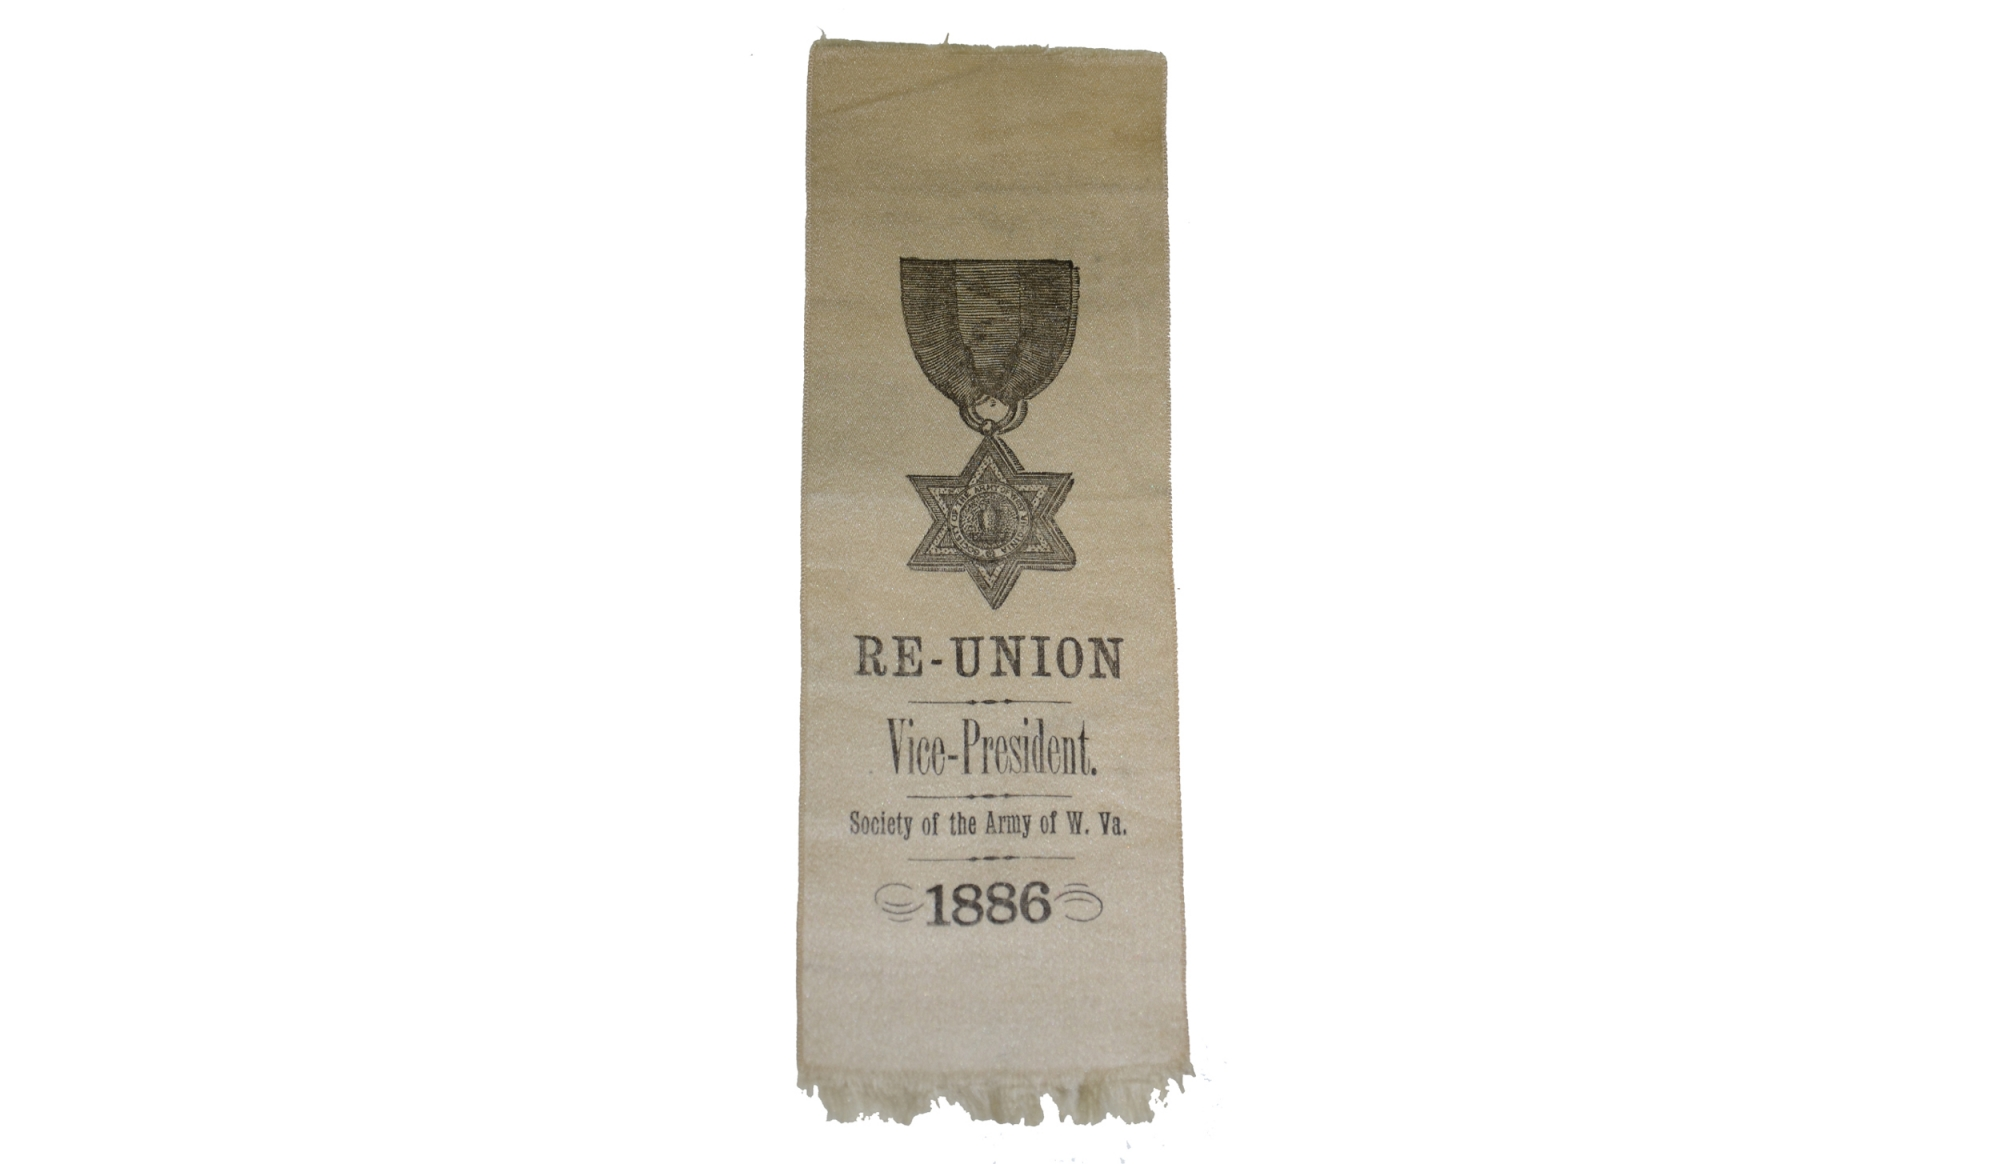 SOCIETY OF THE ARMY OF WEST VIRGINIA VICE-PRESIDENT REUNION RIBBON